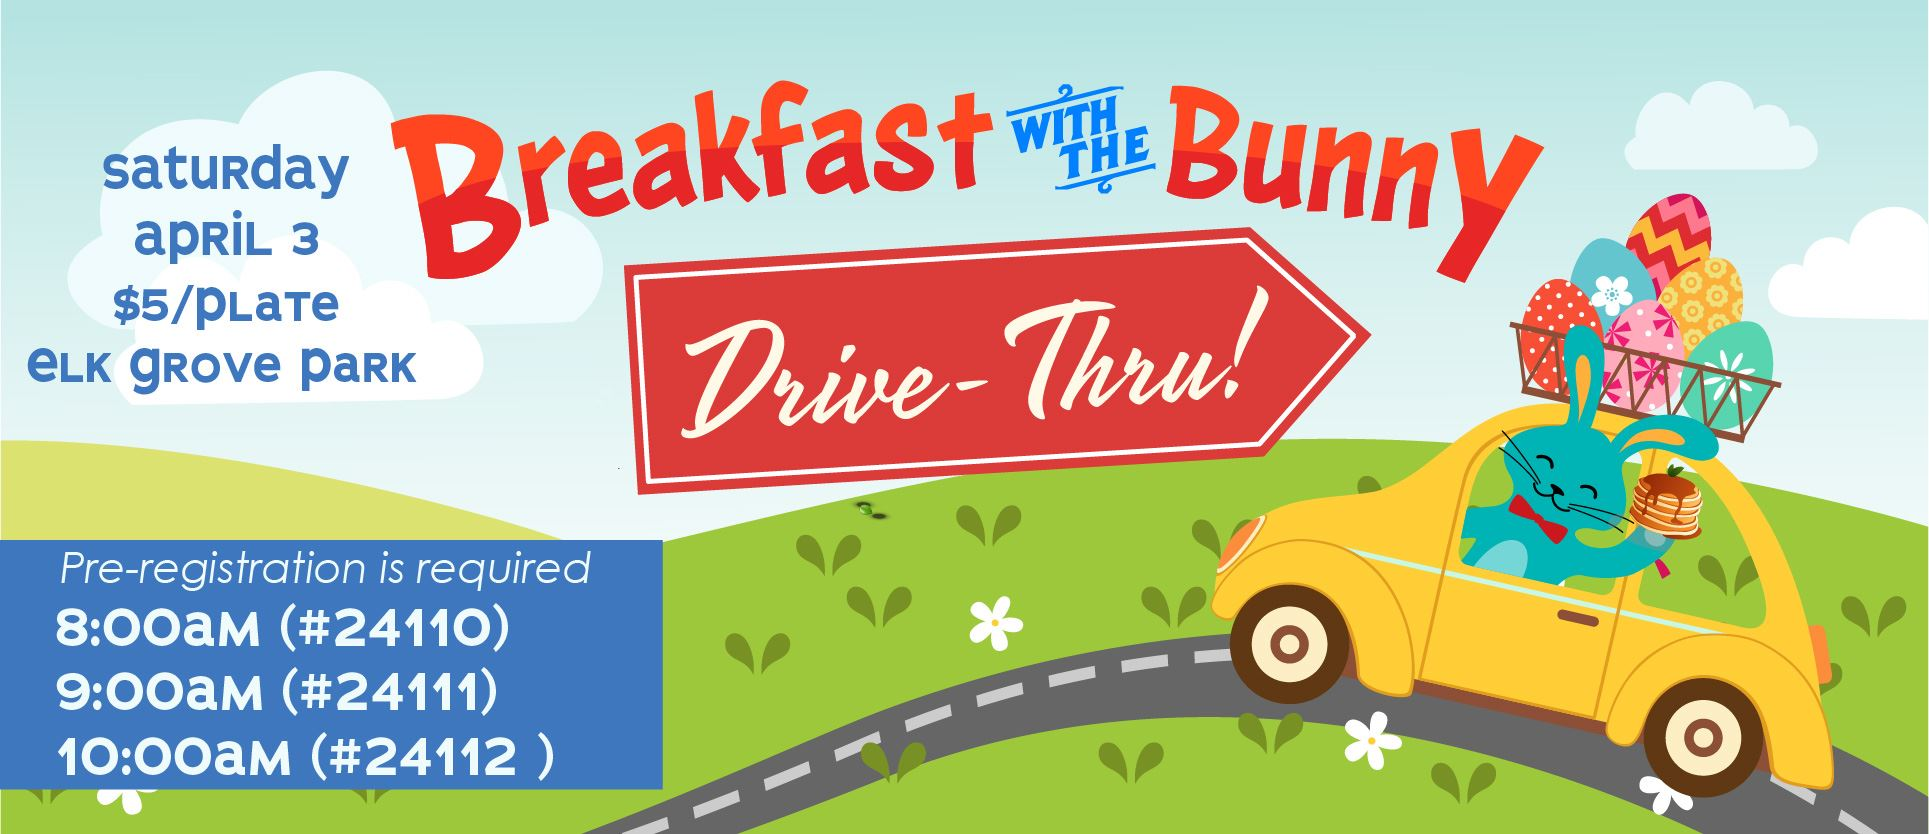 Graphic Image for Breakfast with the Bunny Drive Through Event